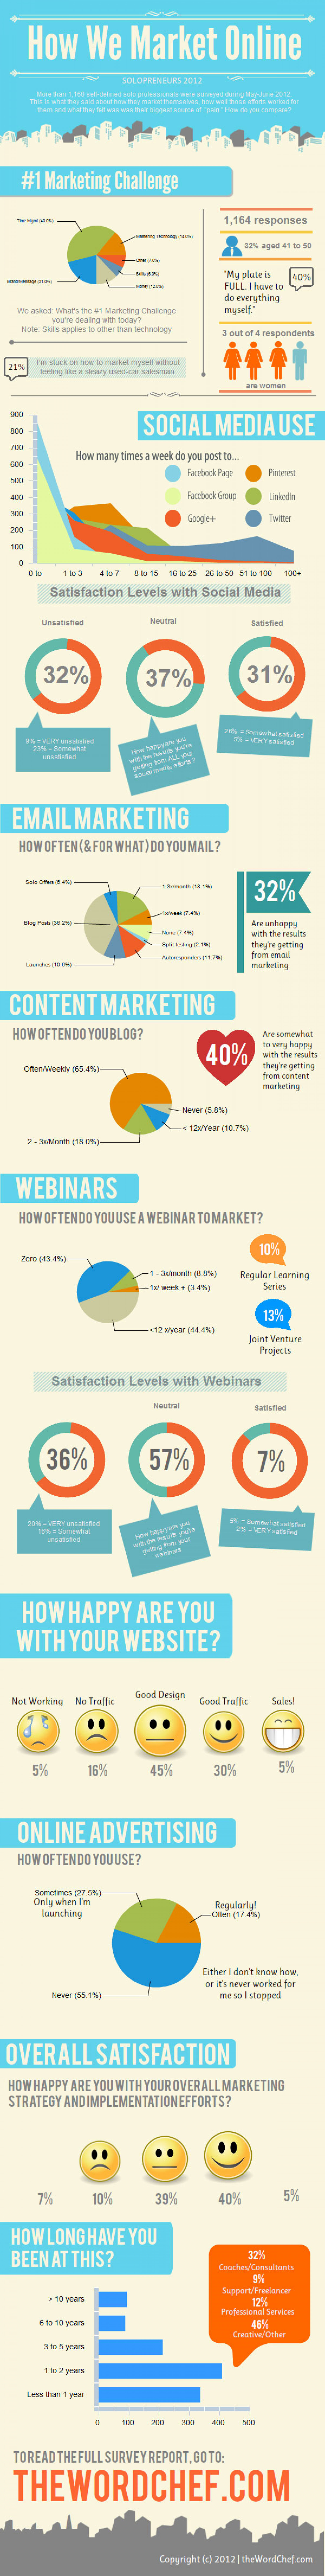 Solopreneurs: How We Market Online (What's Working, What's Not) Infographic